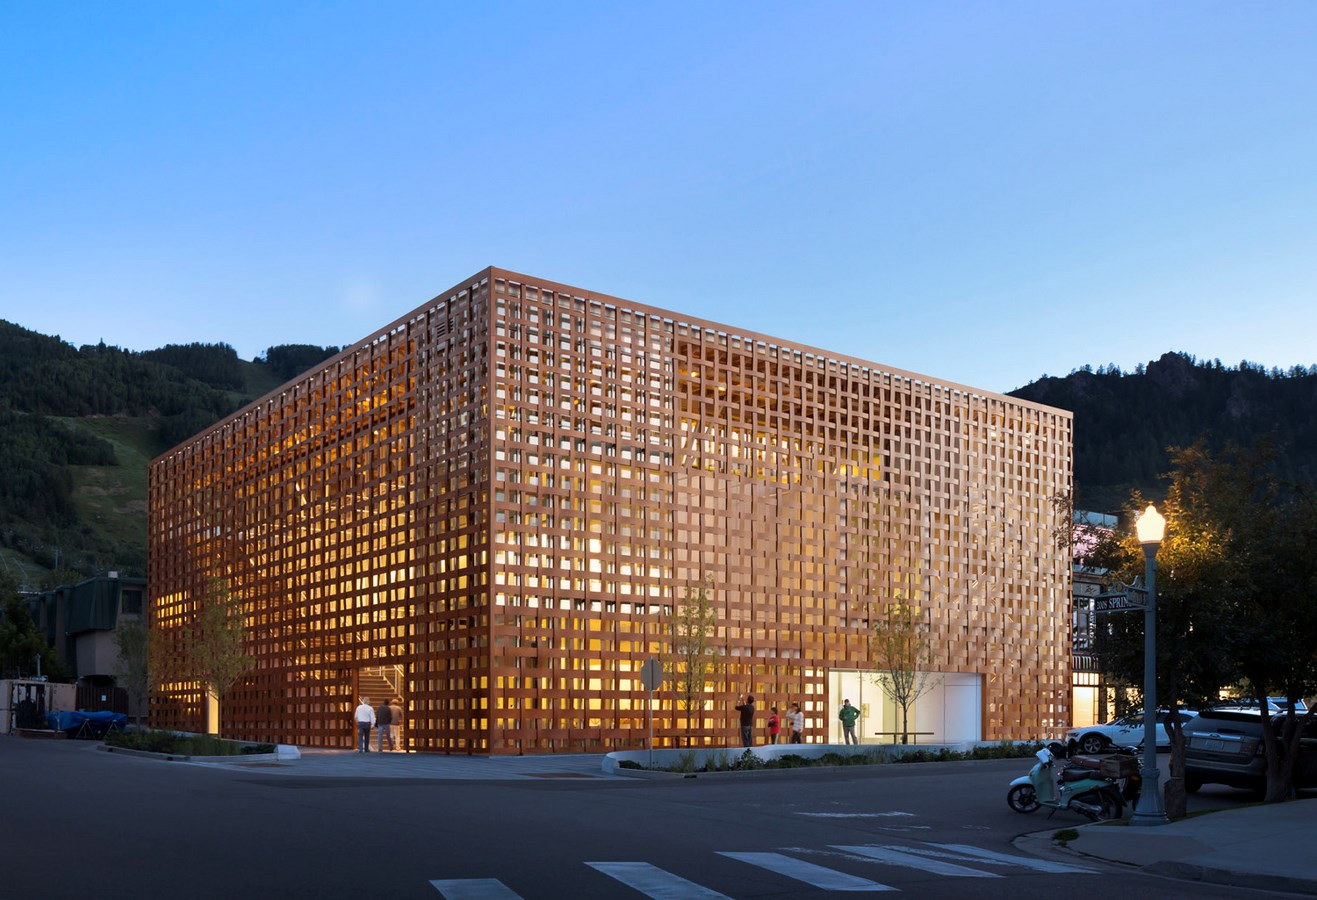 100 Best Architecture Projects of the 21st Century - Aspen Art Museum